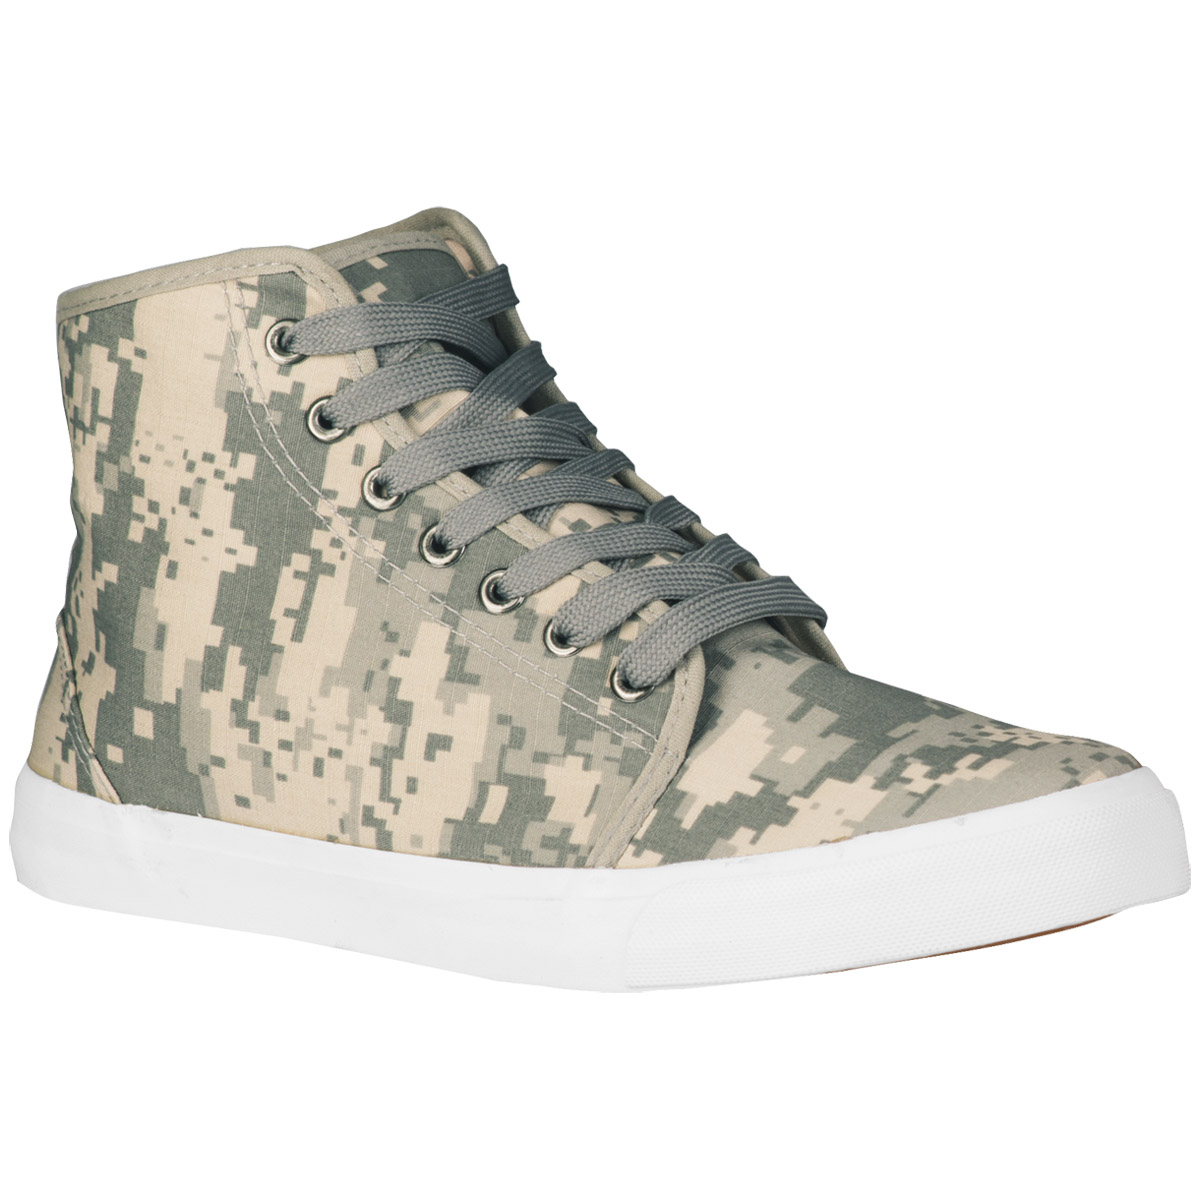 Mil-Tec Army Sneakers Military Trainers Mens Tactical ...